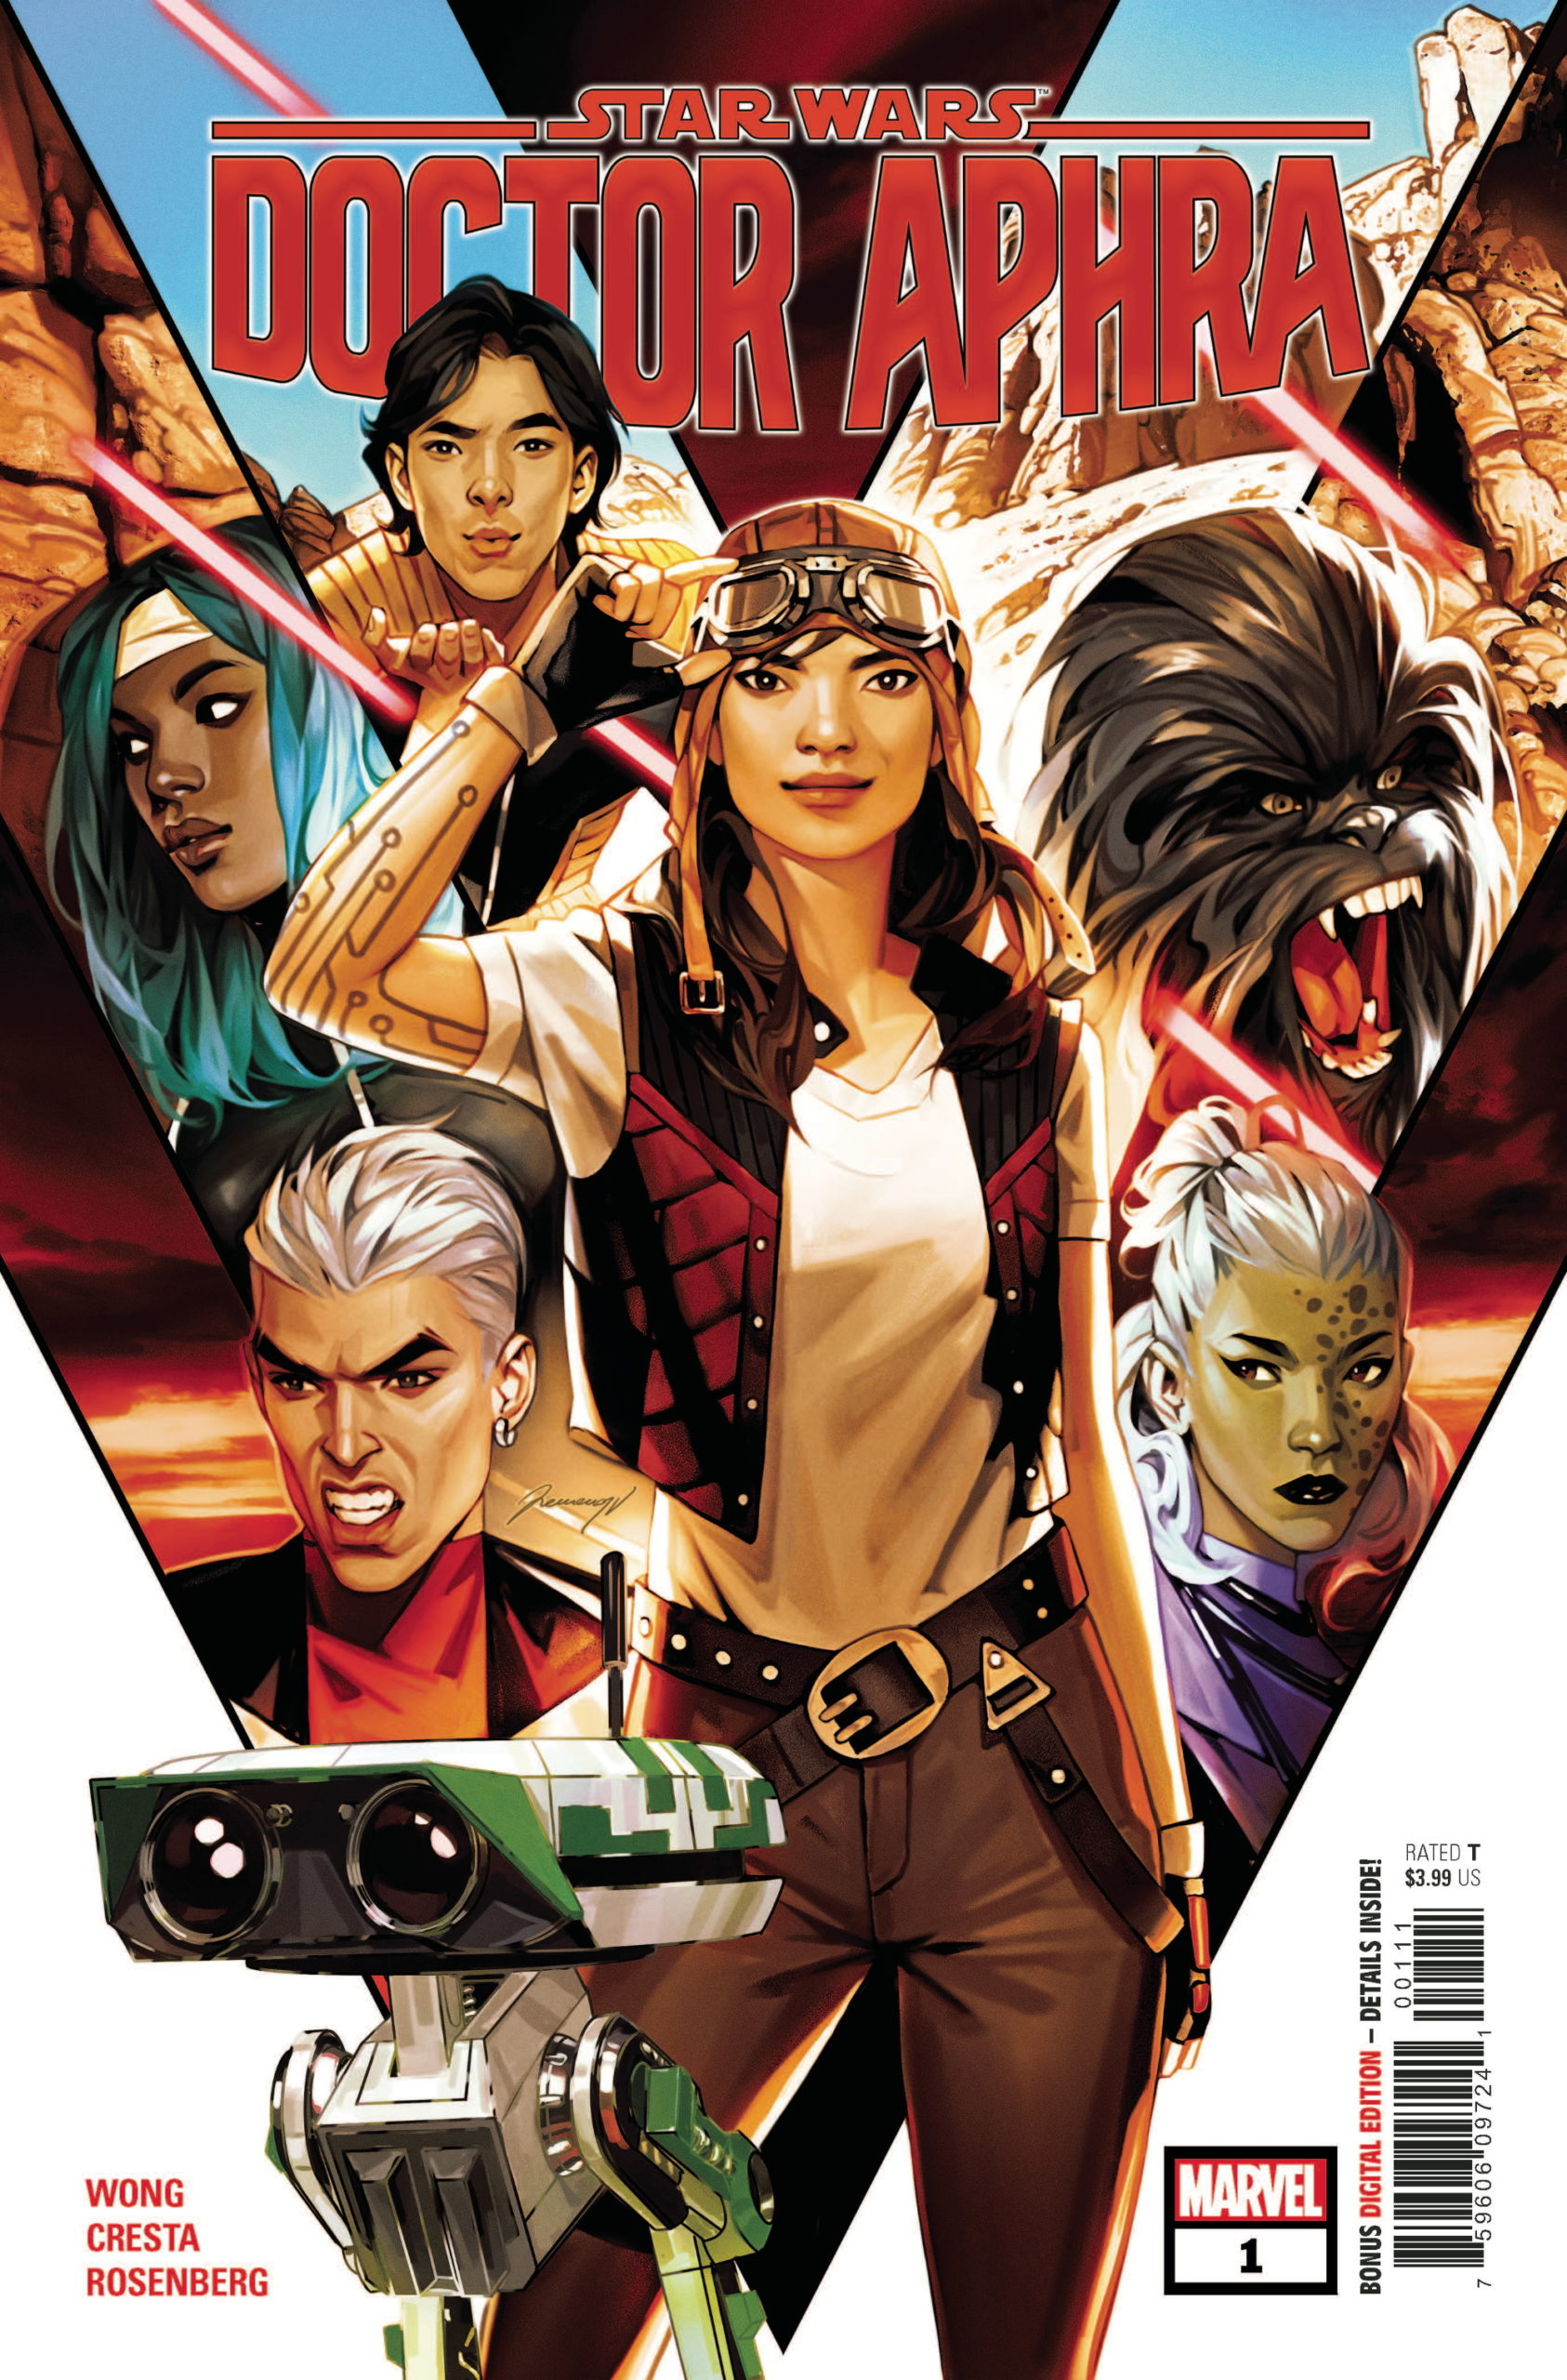 Doctor Aphra #1 (01.04.2020)